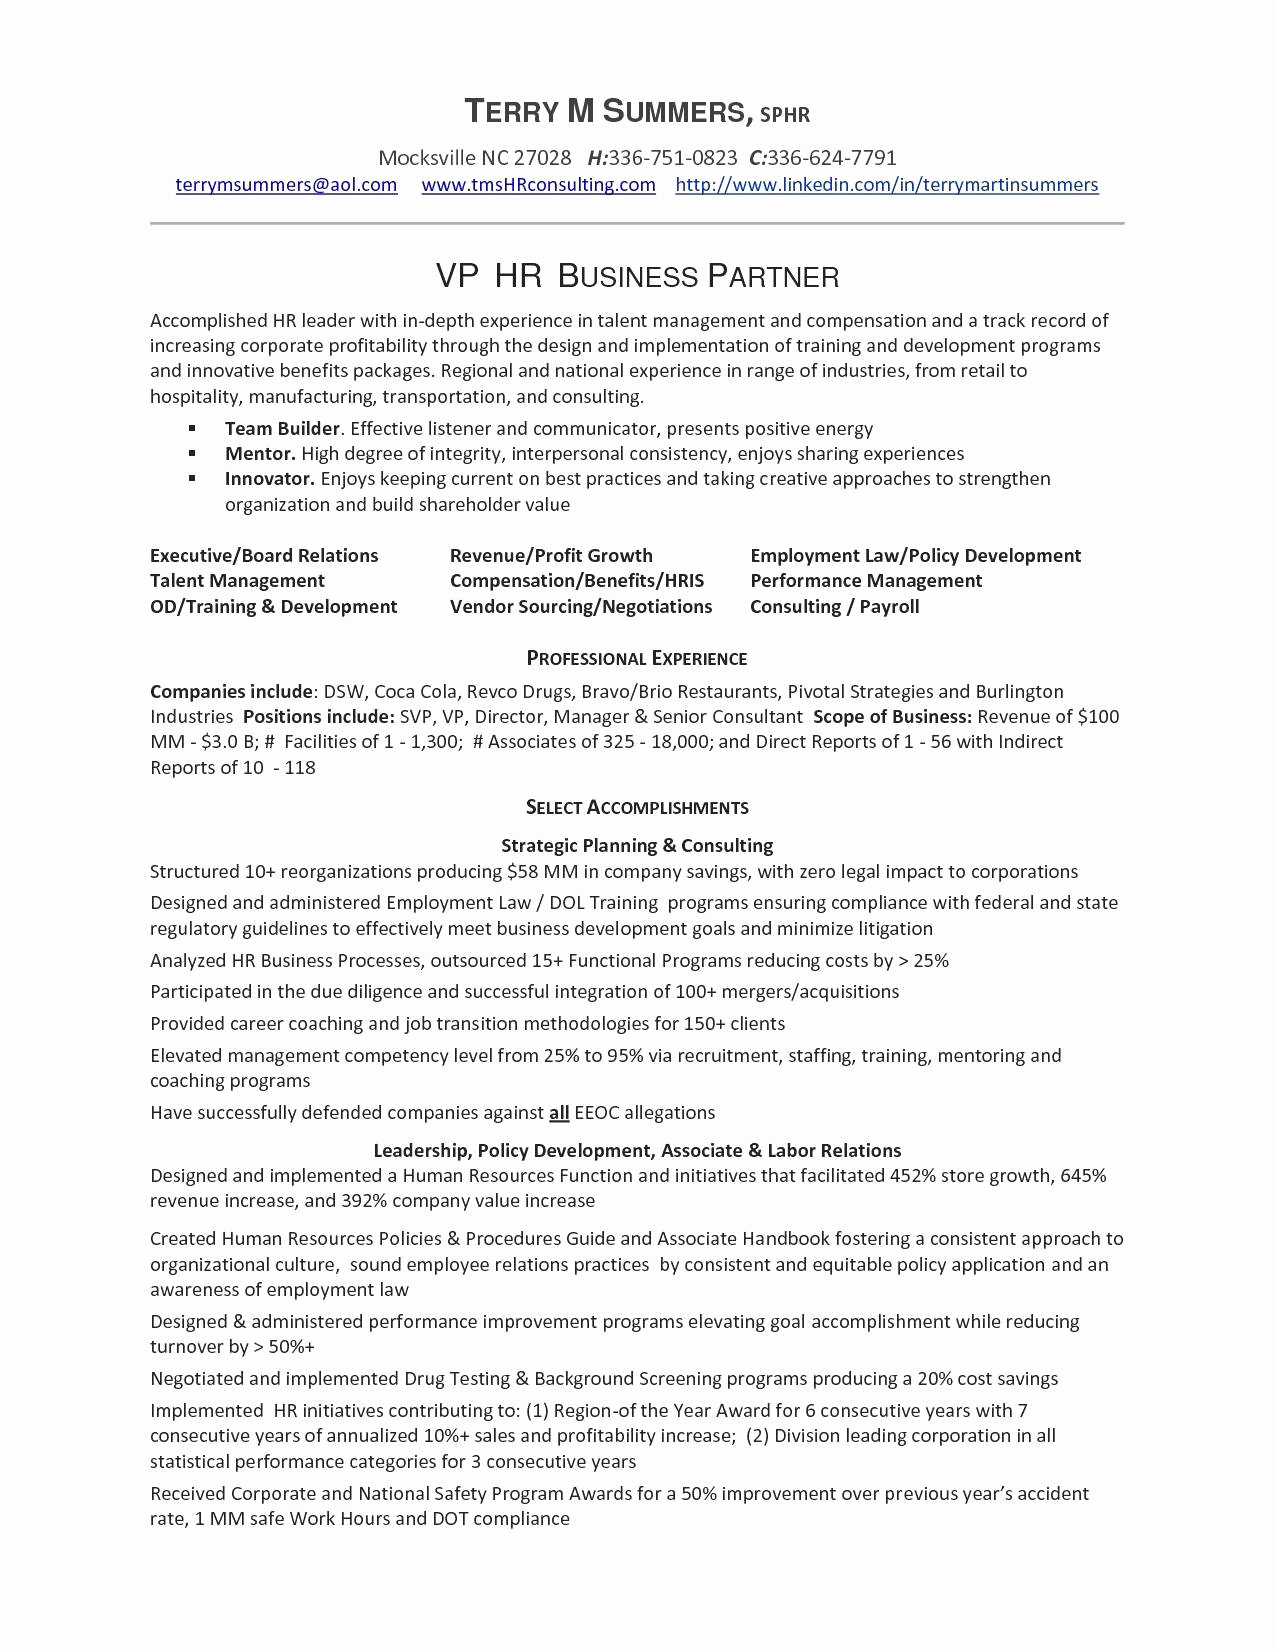 Pta Resume Template - Physical therapist Resume Samples Physical therapist Resumes Fresh